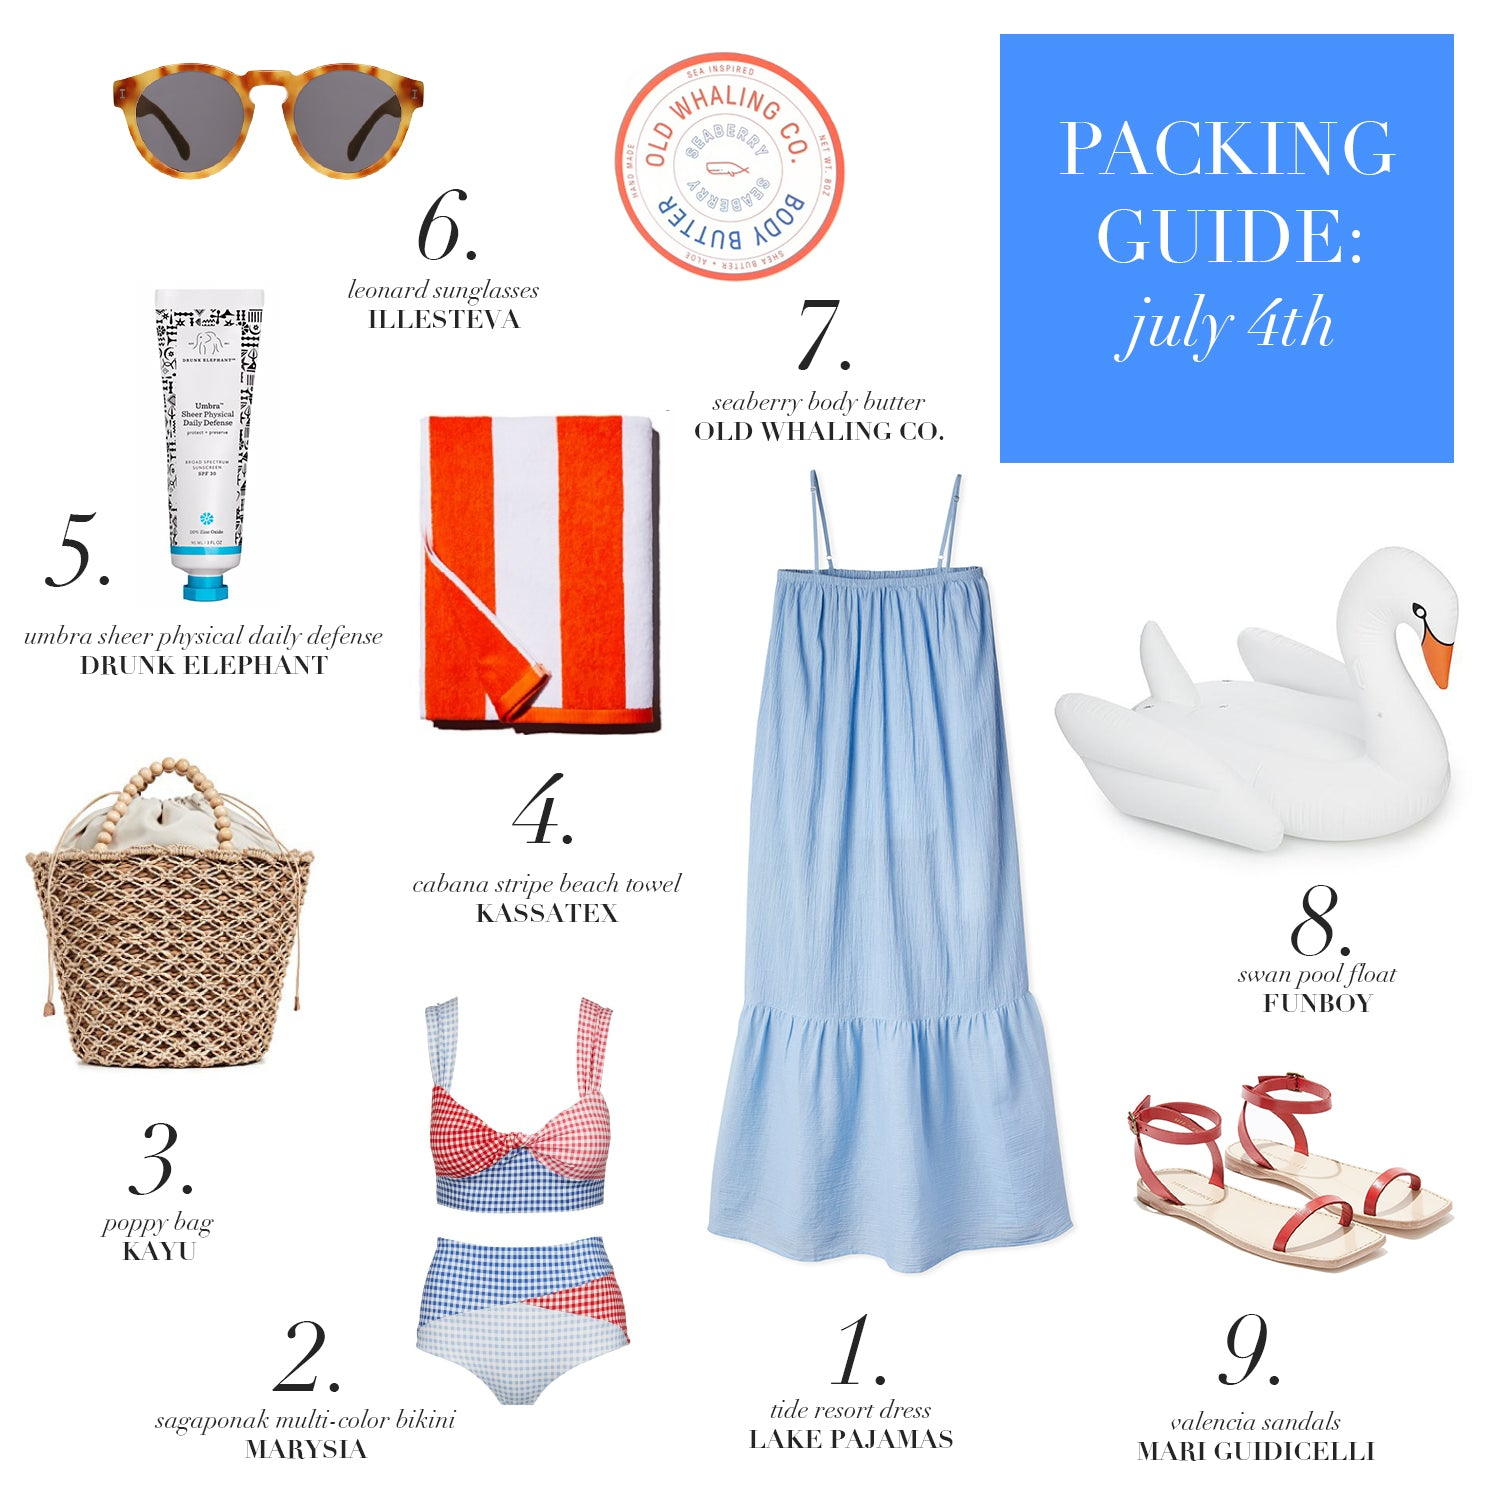 Packing Guide: July 4th